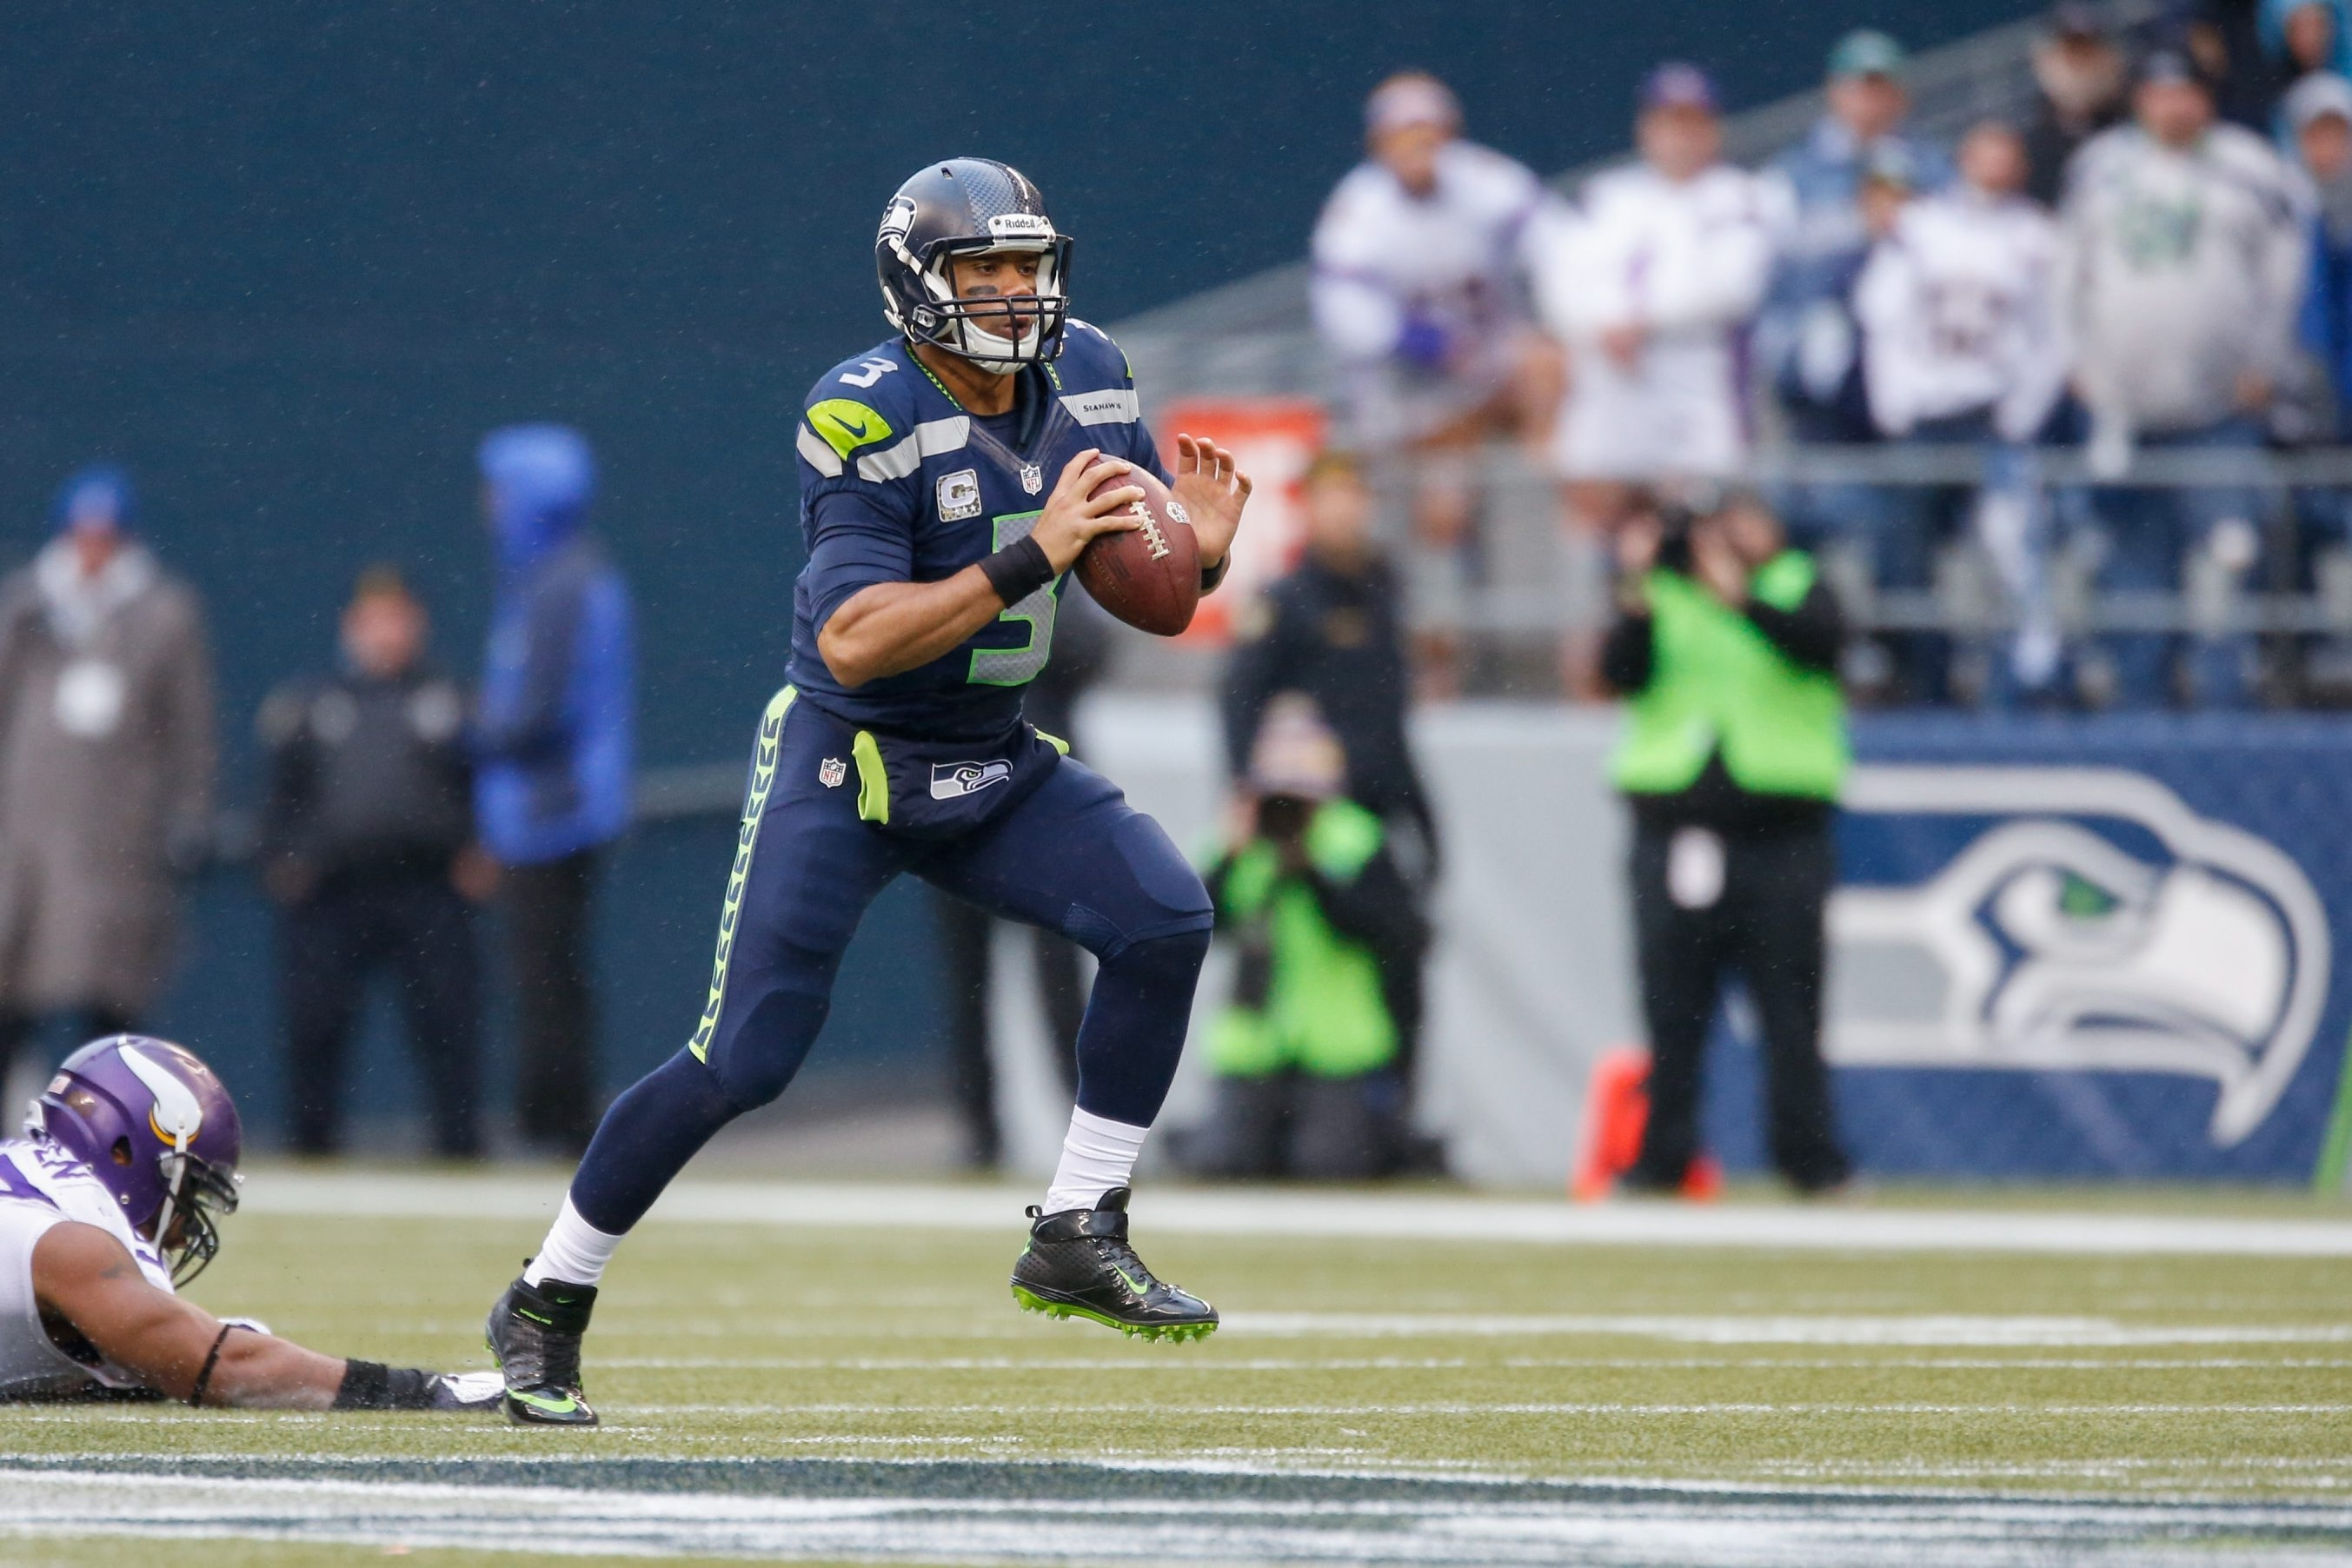 Seattle and quarterback Russell Wilson have won four of their last five games to revive their playoff chances.